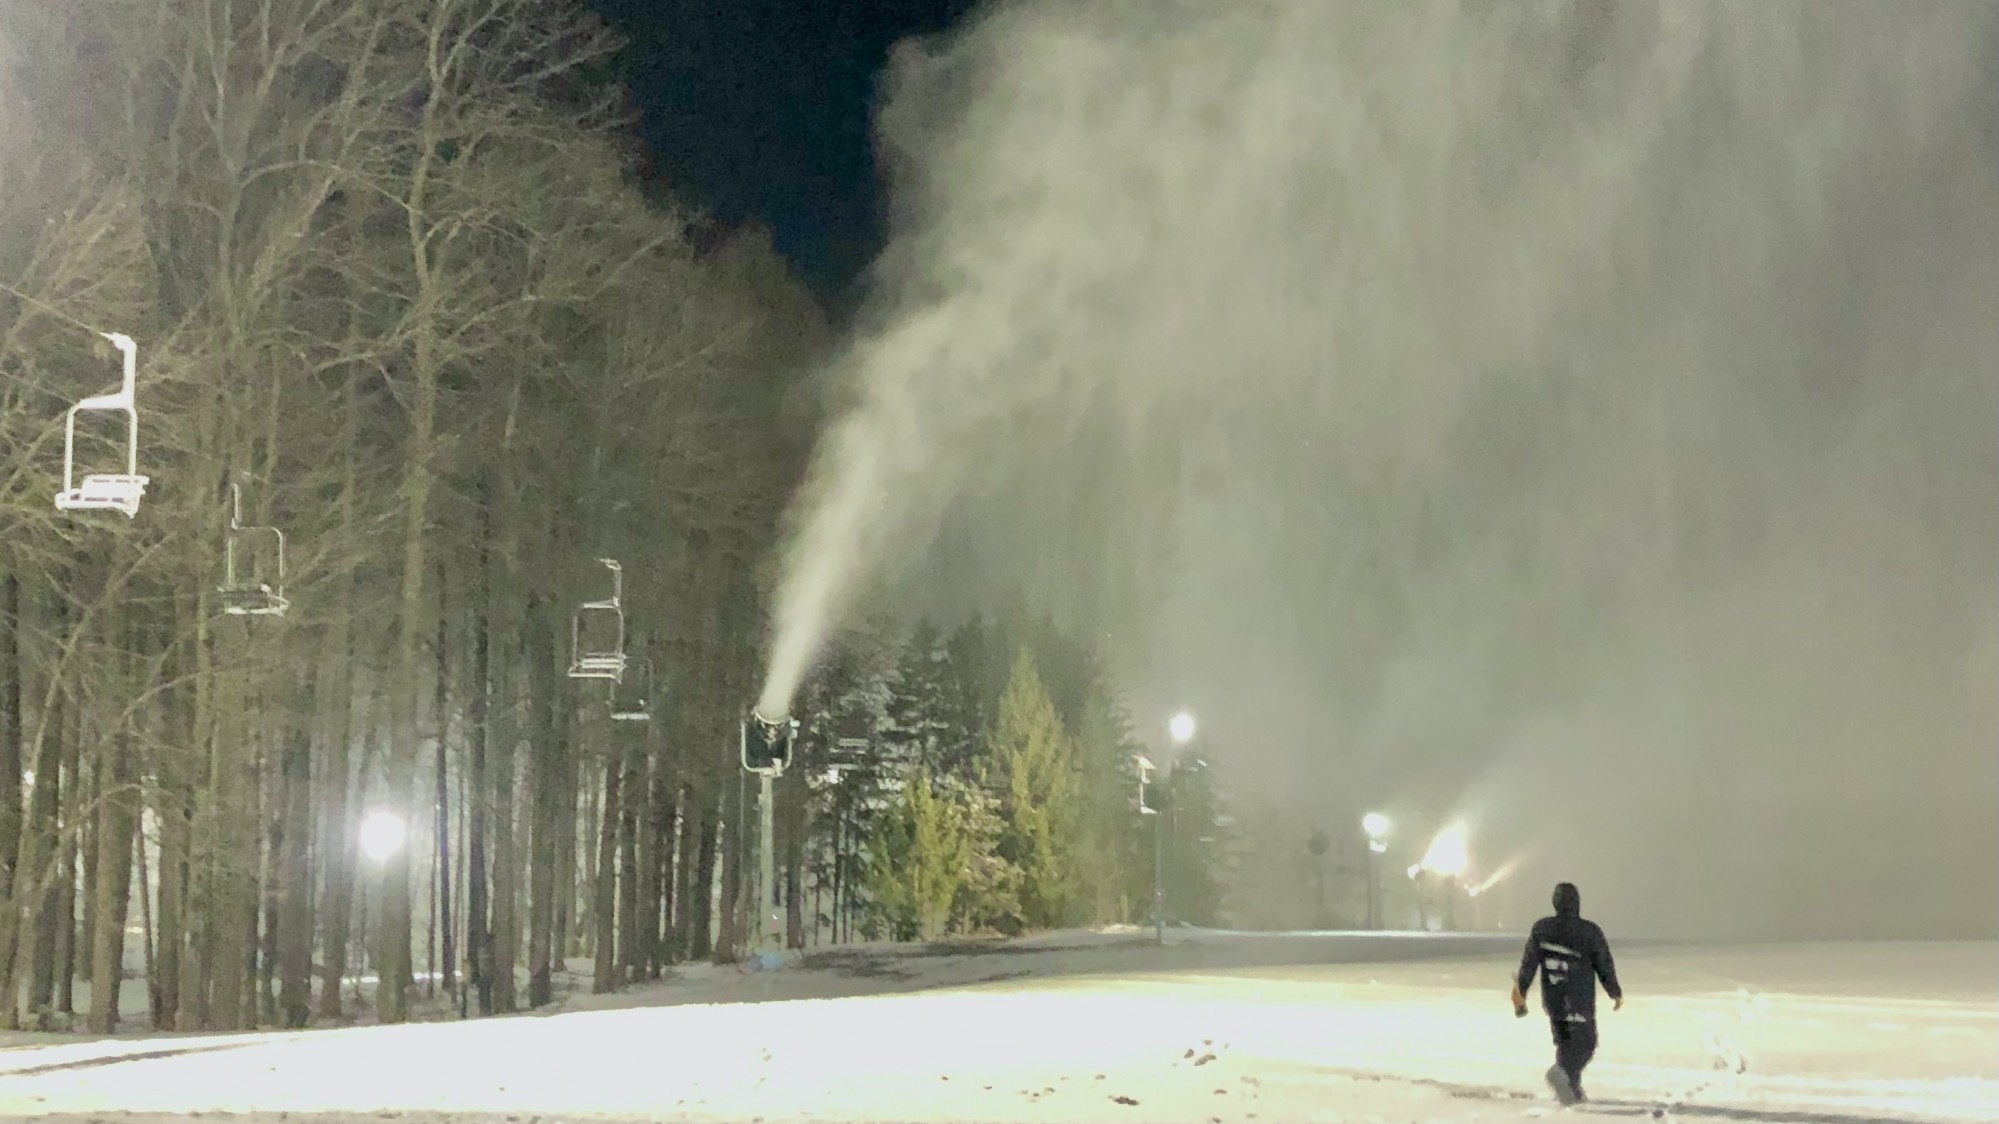 Snowmaking Continues December 22nd 2020